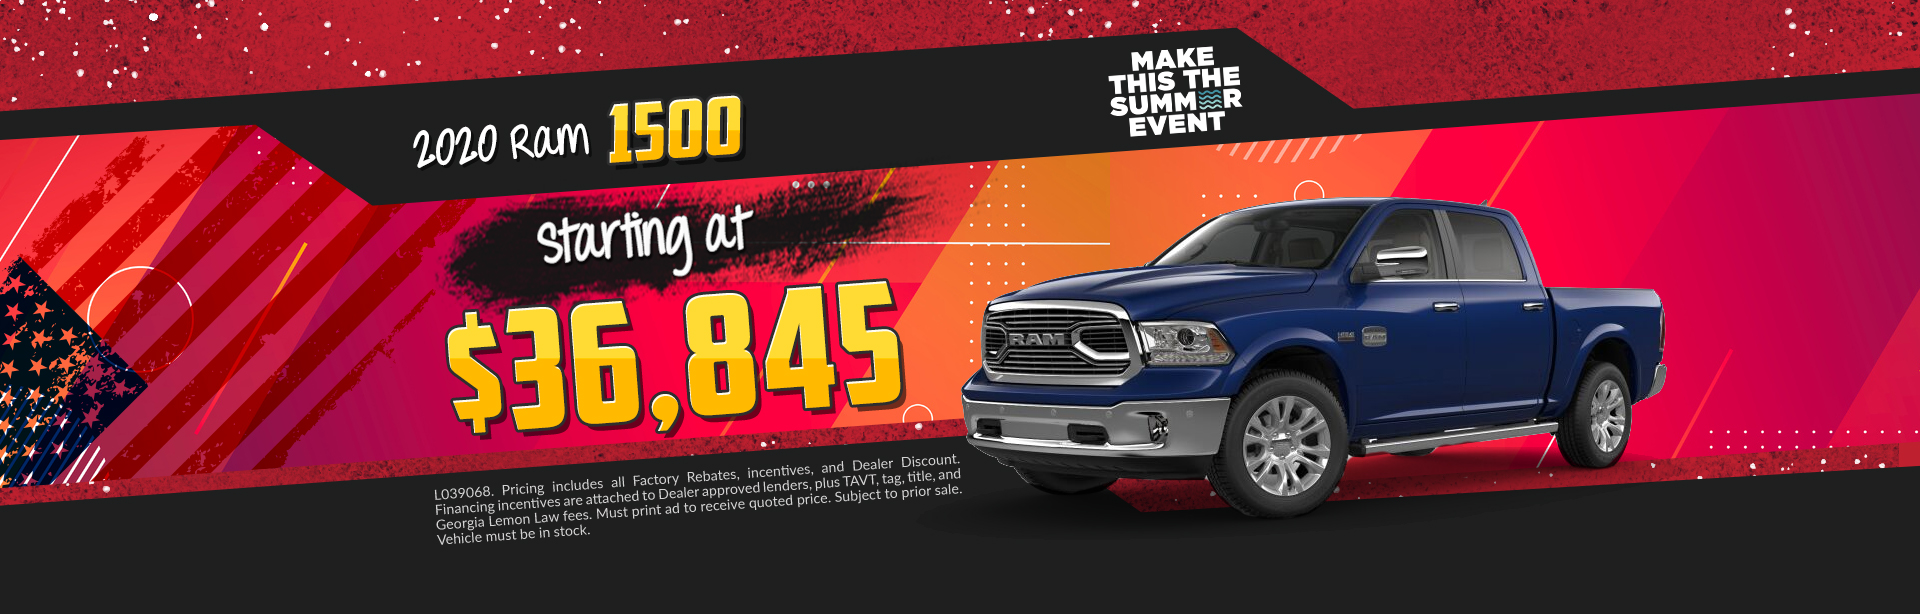 2019 Ram 1500 - Lease for $369 per month